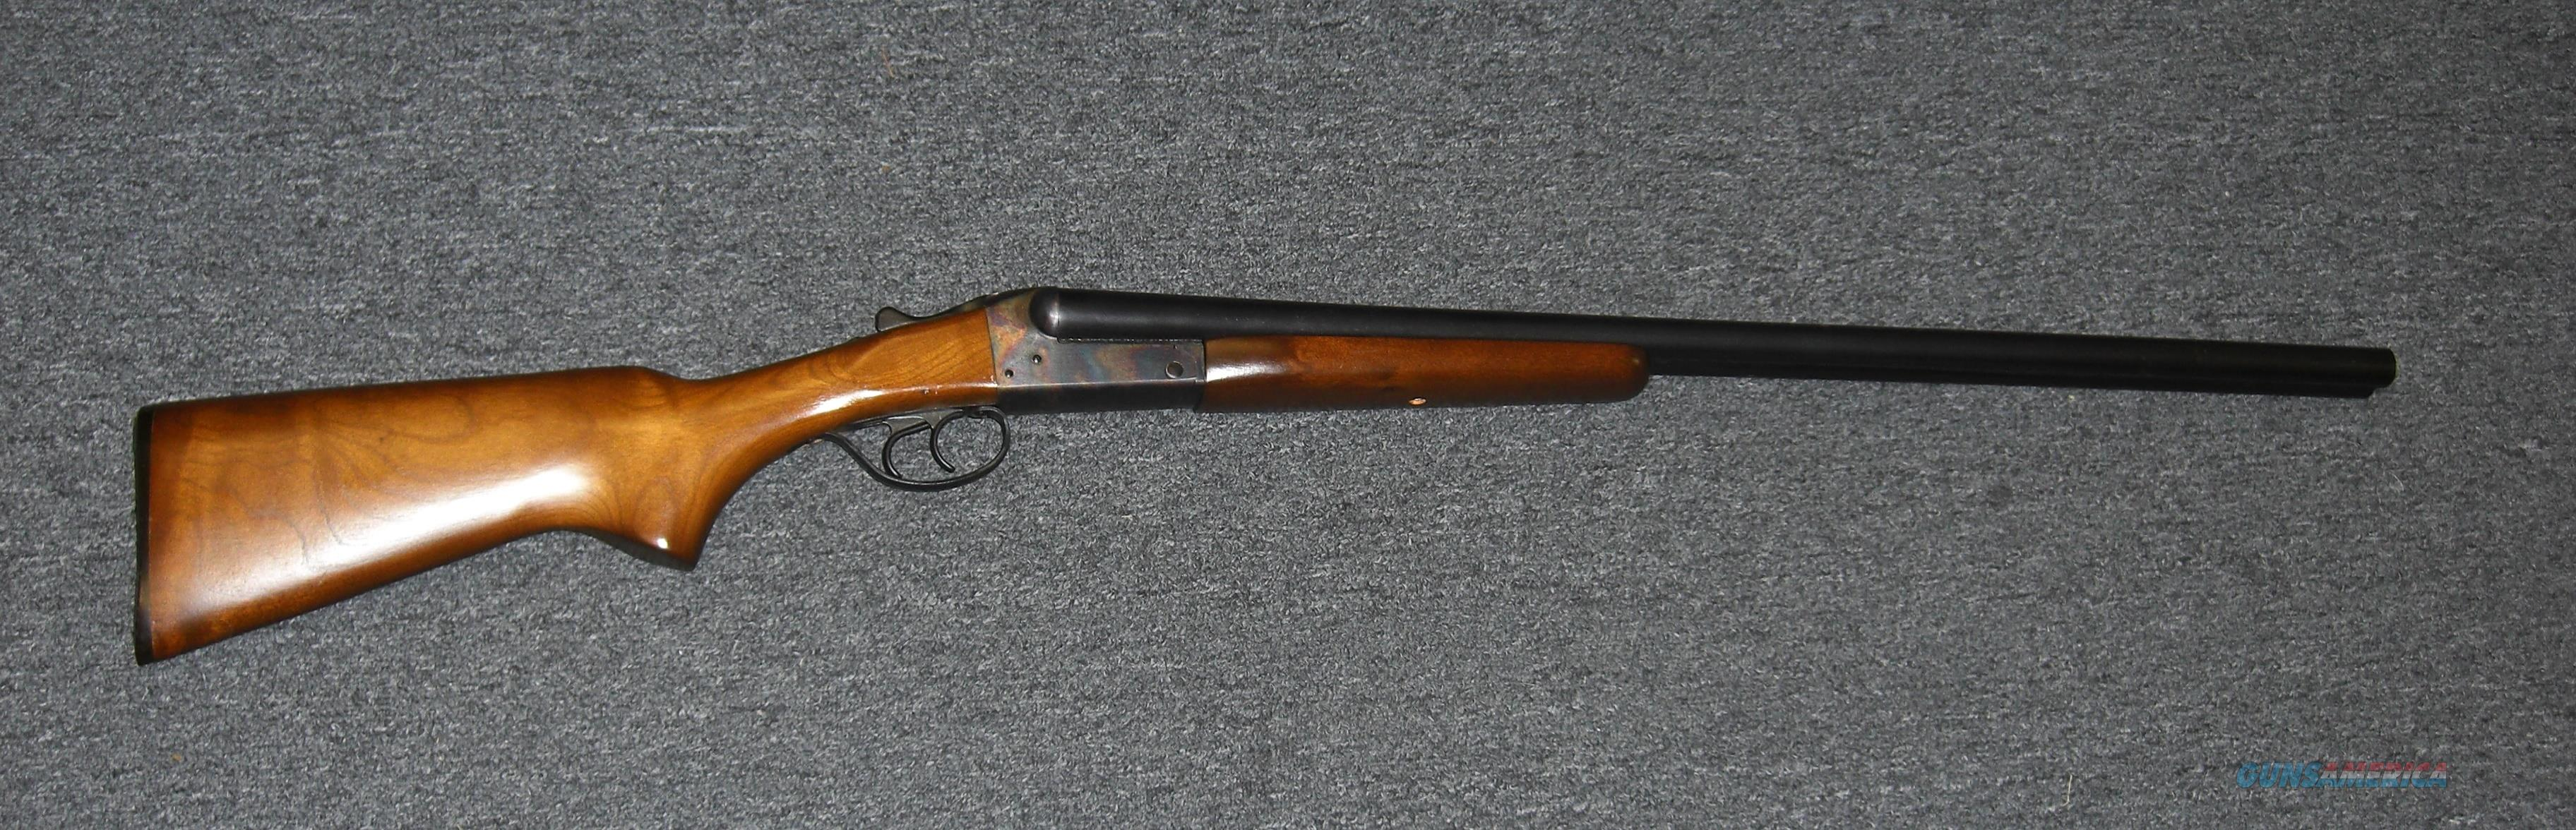 /UserImages/26038/939414789 7873065.jpg. Description: This used Stevens 311  series H shotgun is chambered for the 12 gauge ...